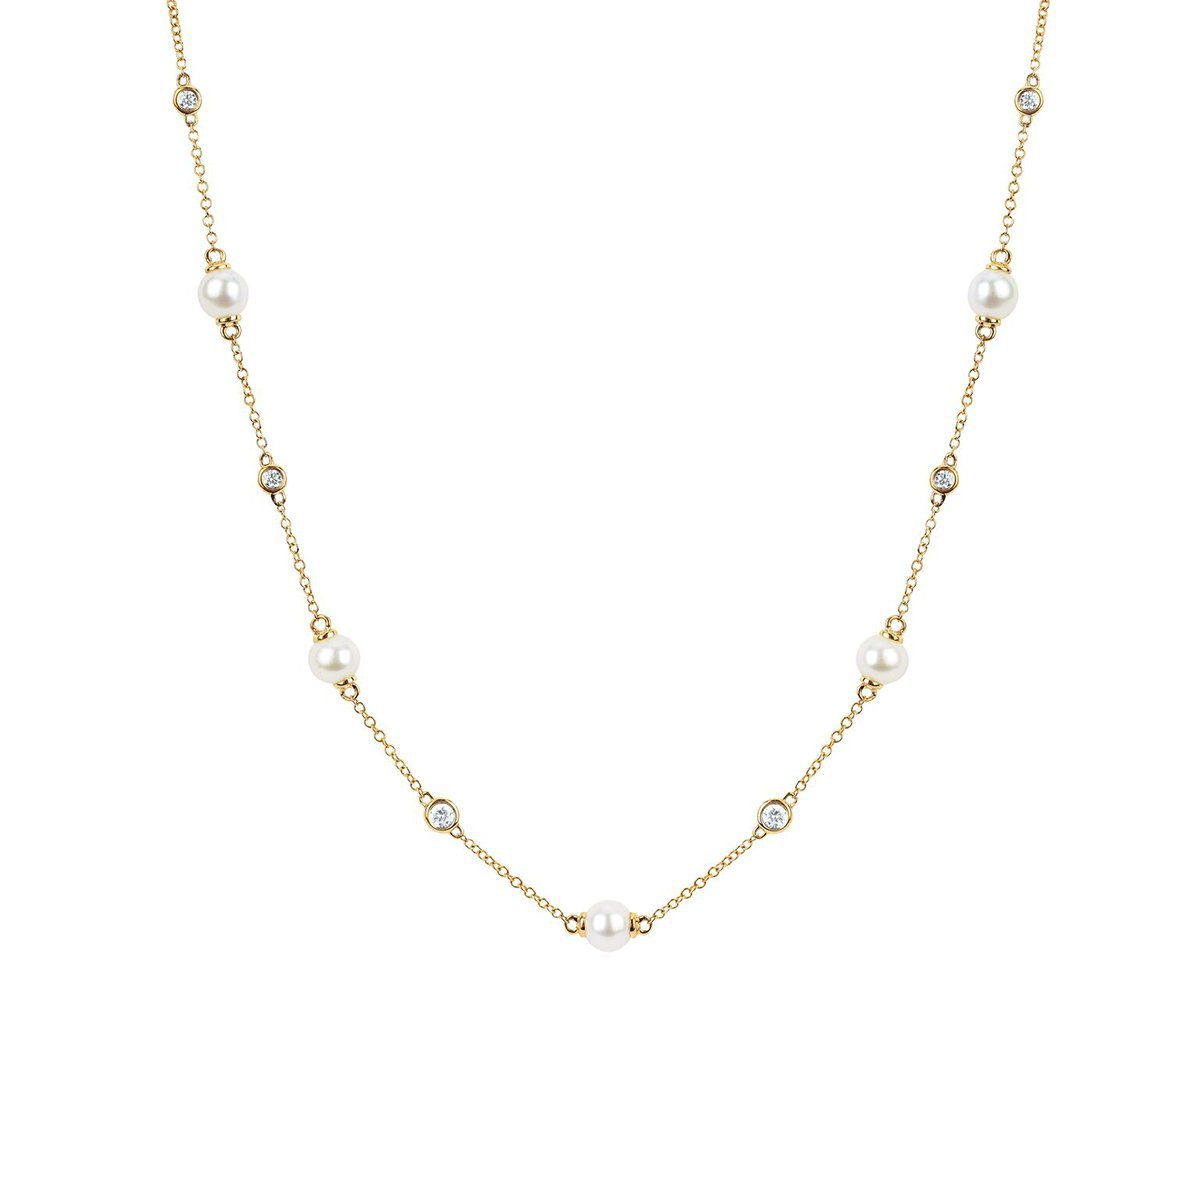 5 Lunar Pearl and Diamond Necklace